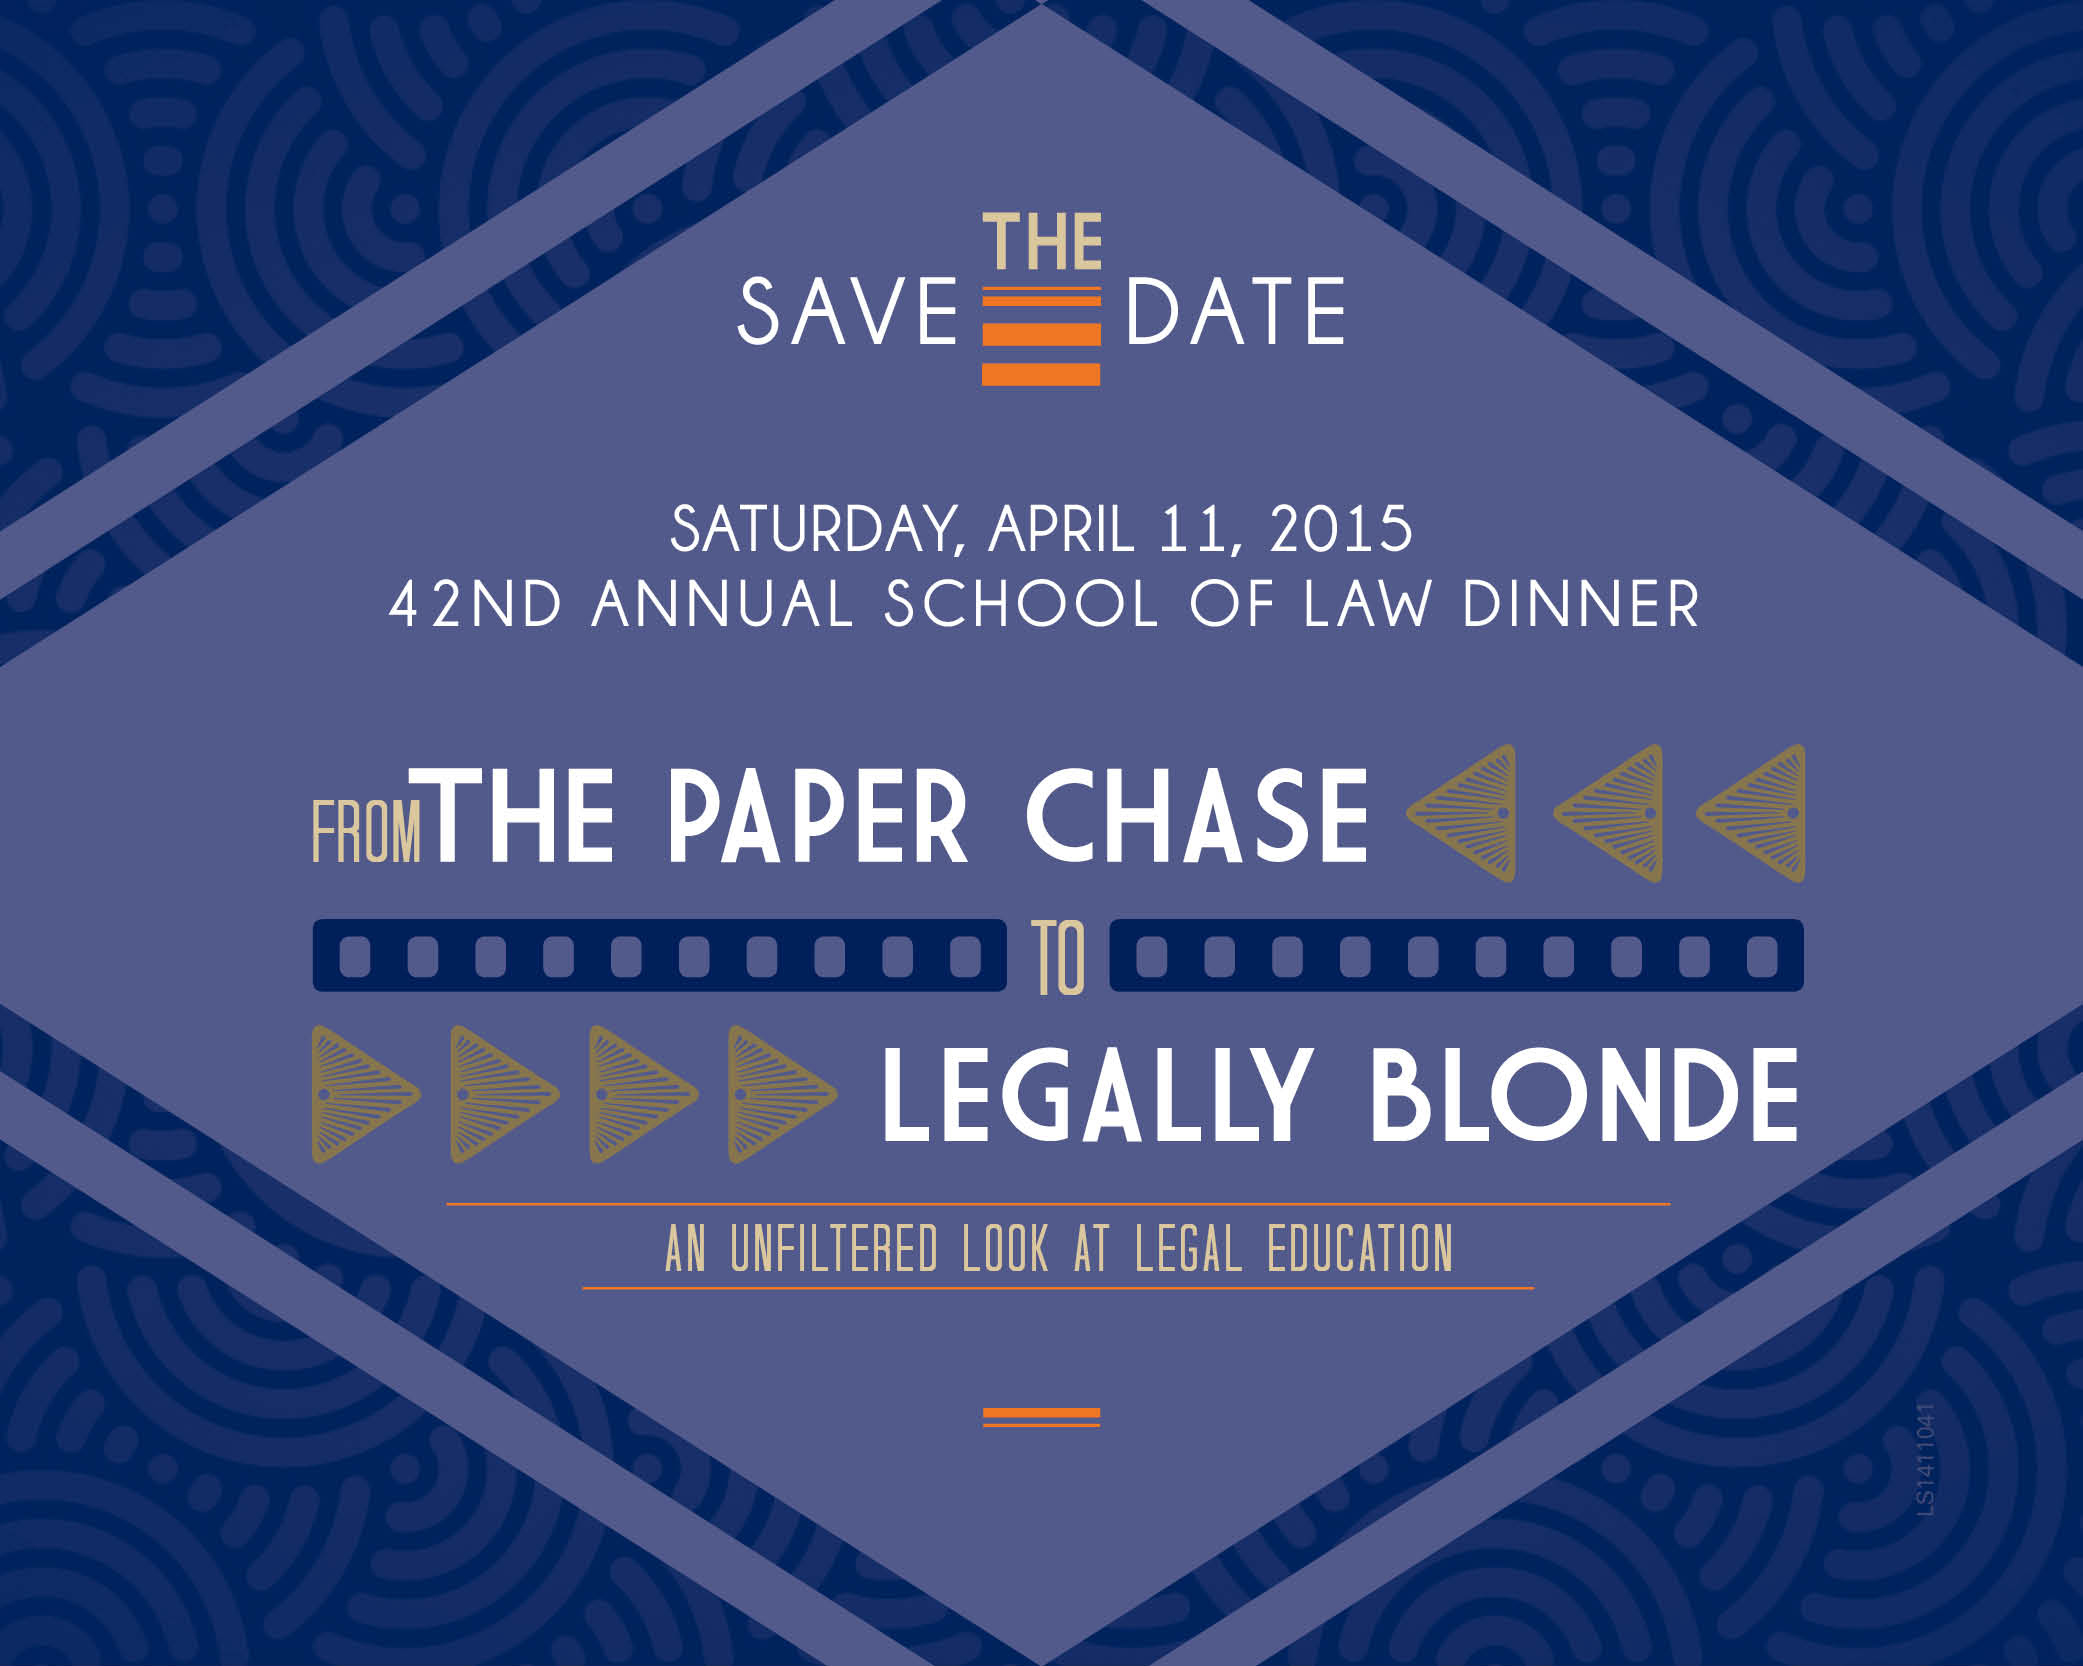 School of Law Dinner Save the Date